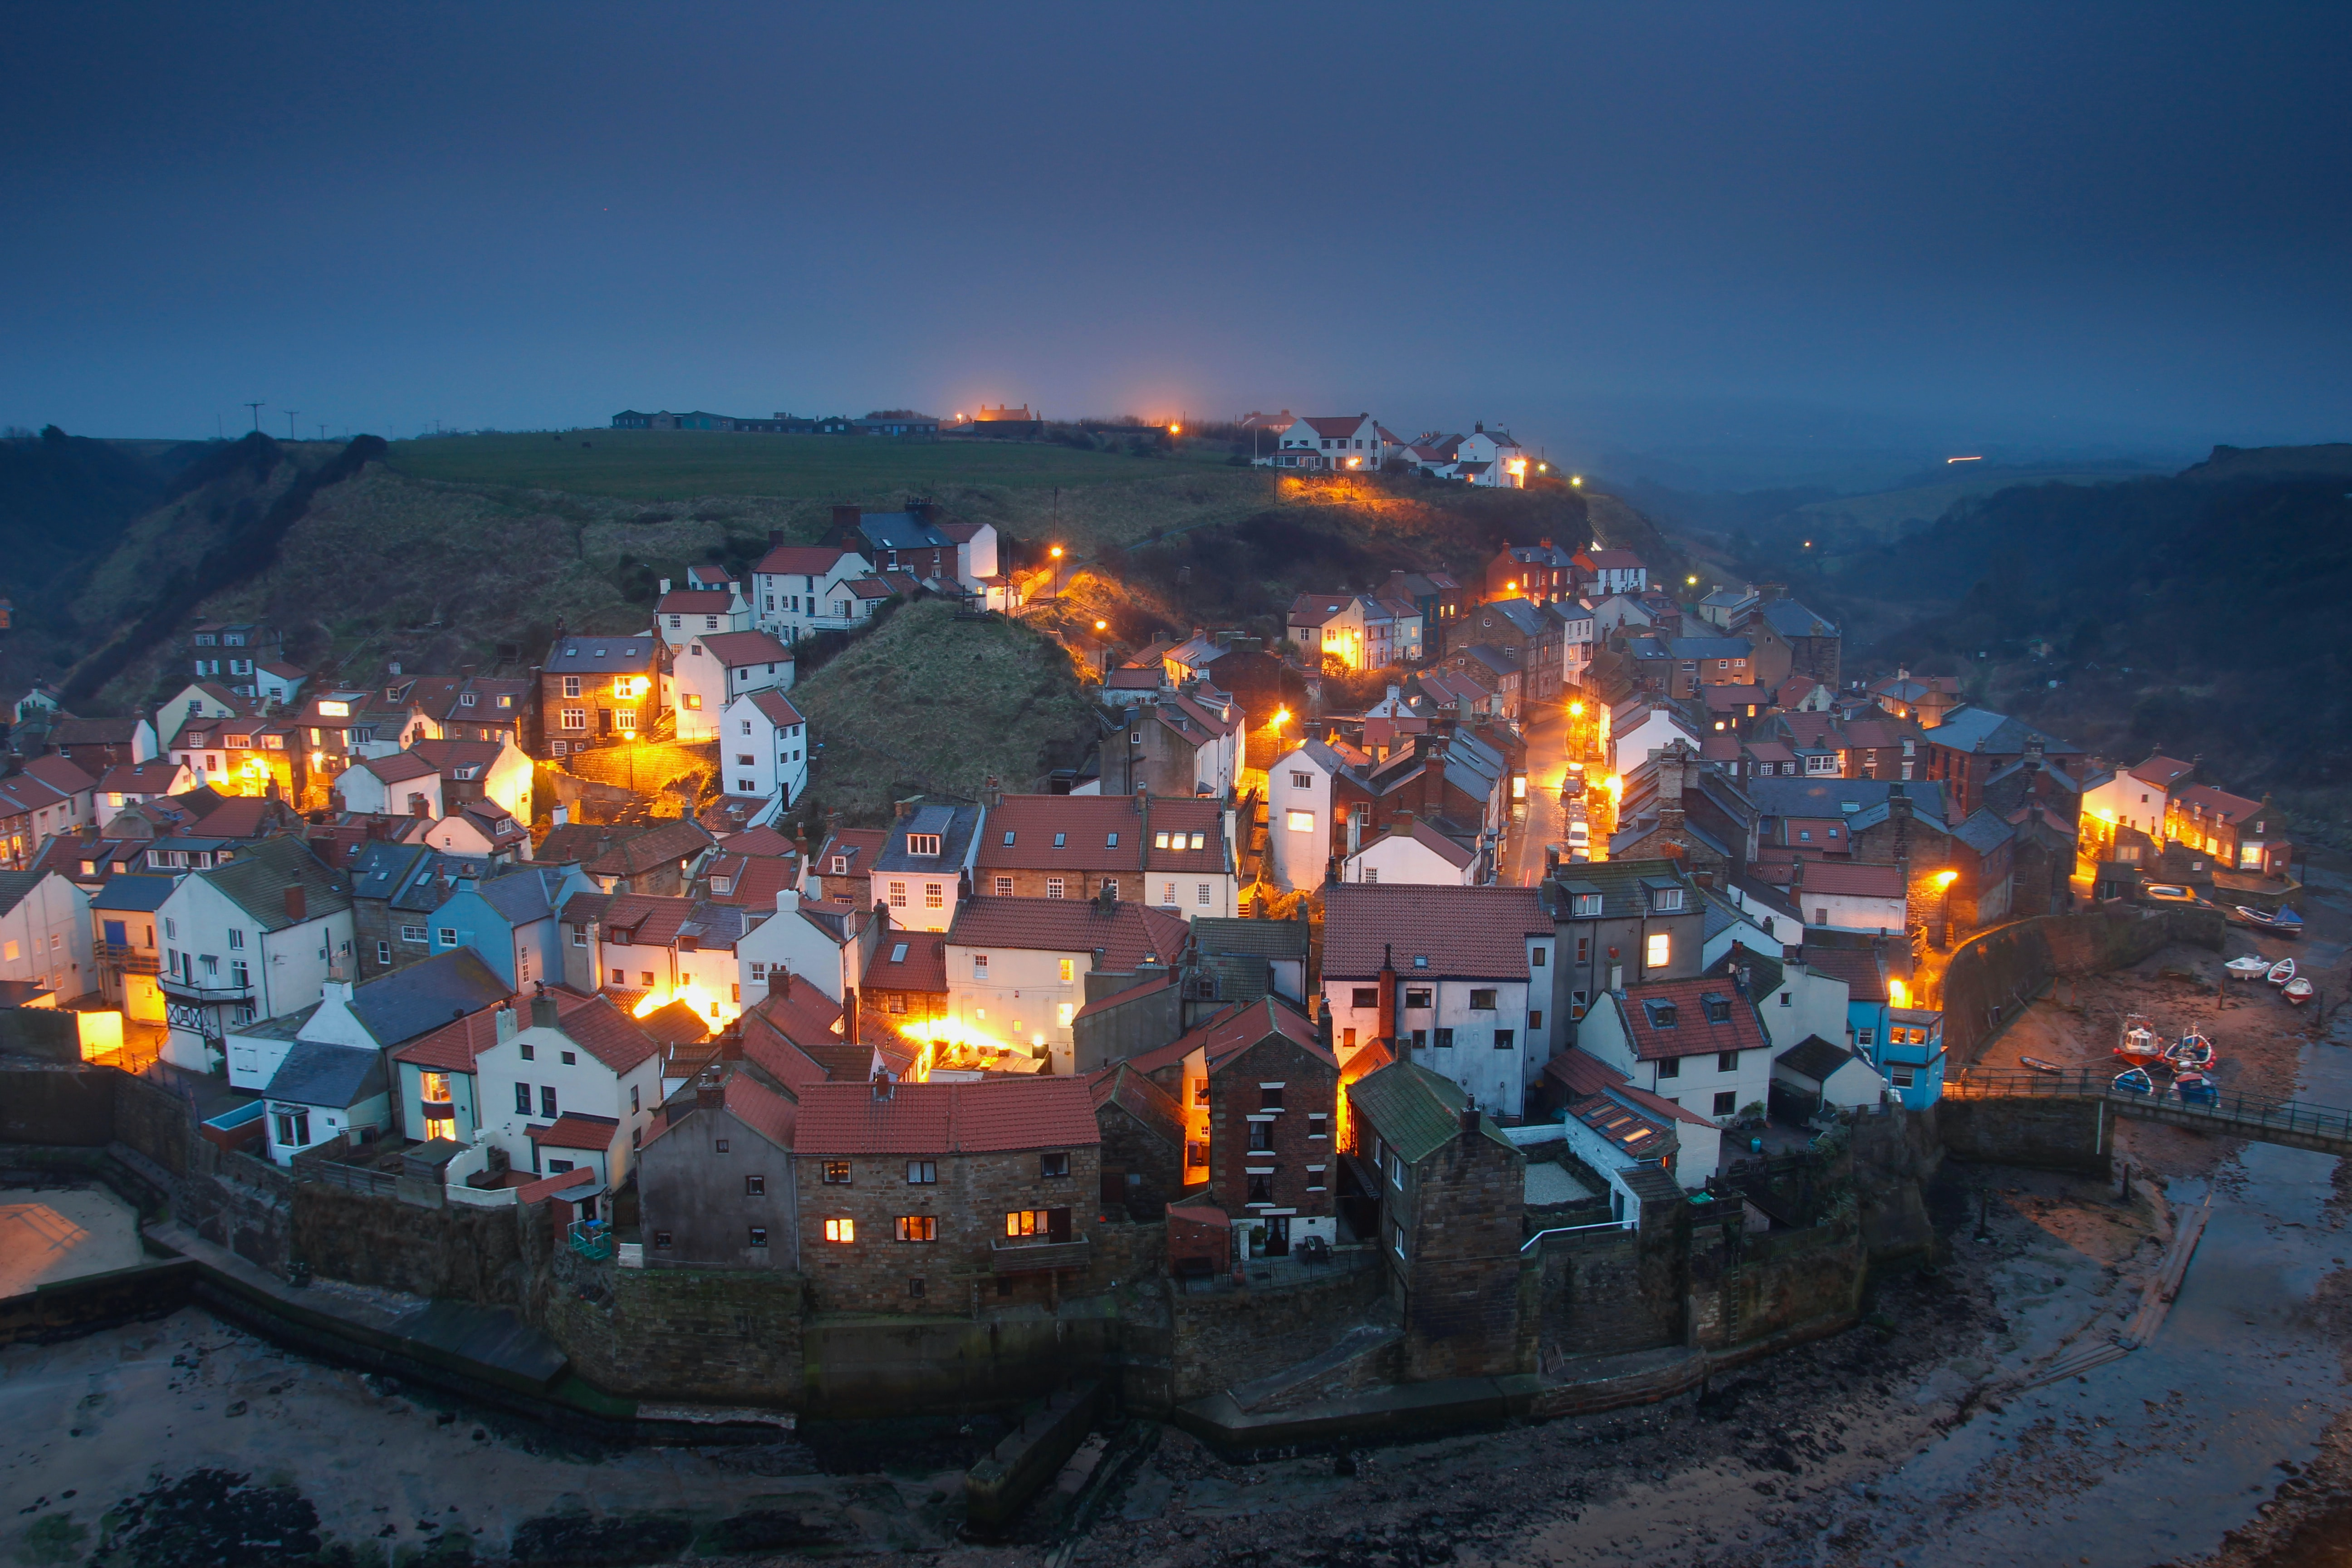 aerial view photography of village during night